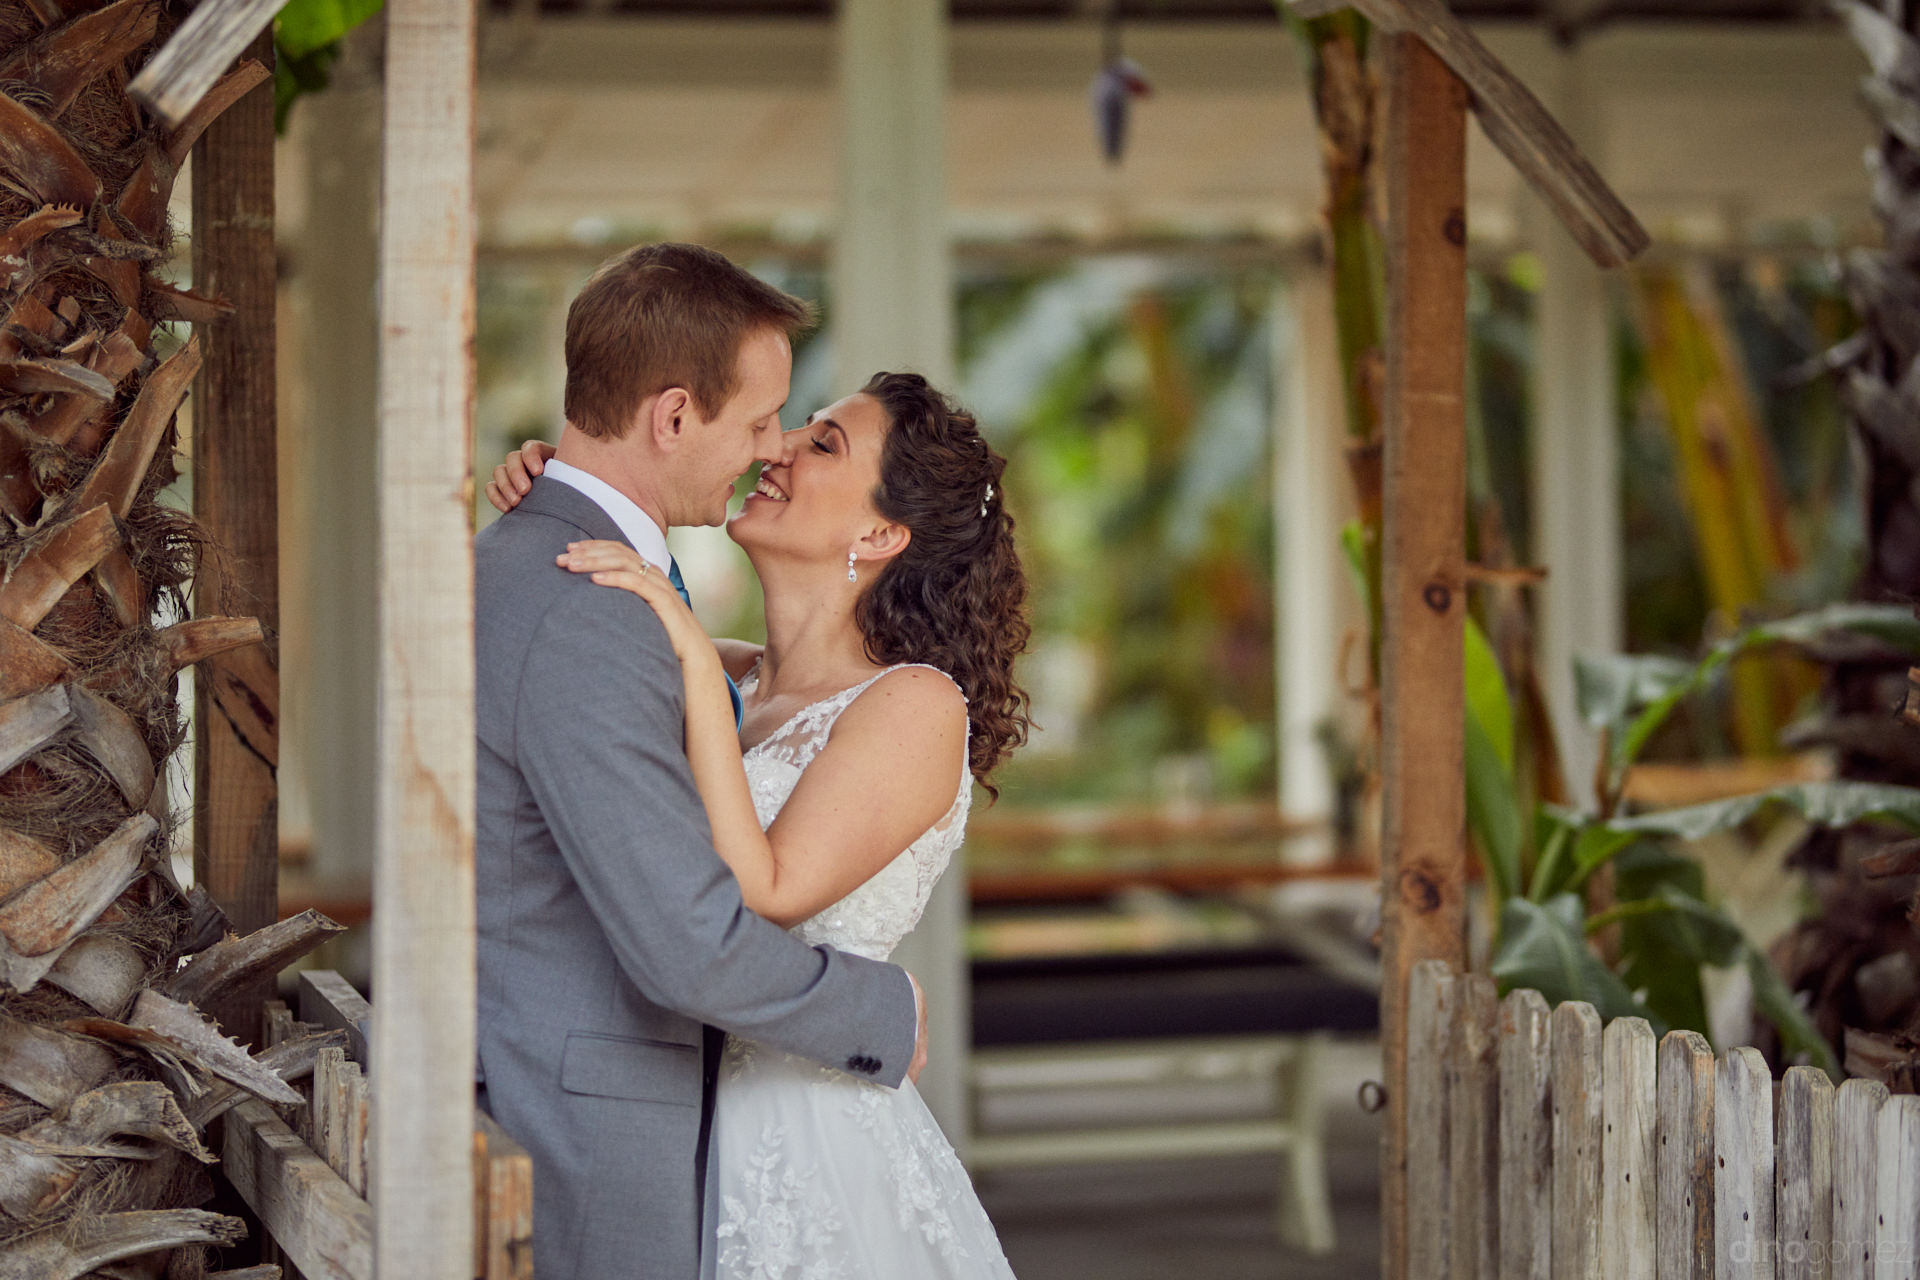 Cabo San Lucas All Inclusive Wedding Packages - Hilary & Bryan Flora Wedding